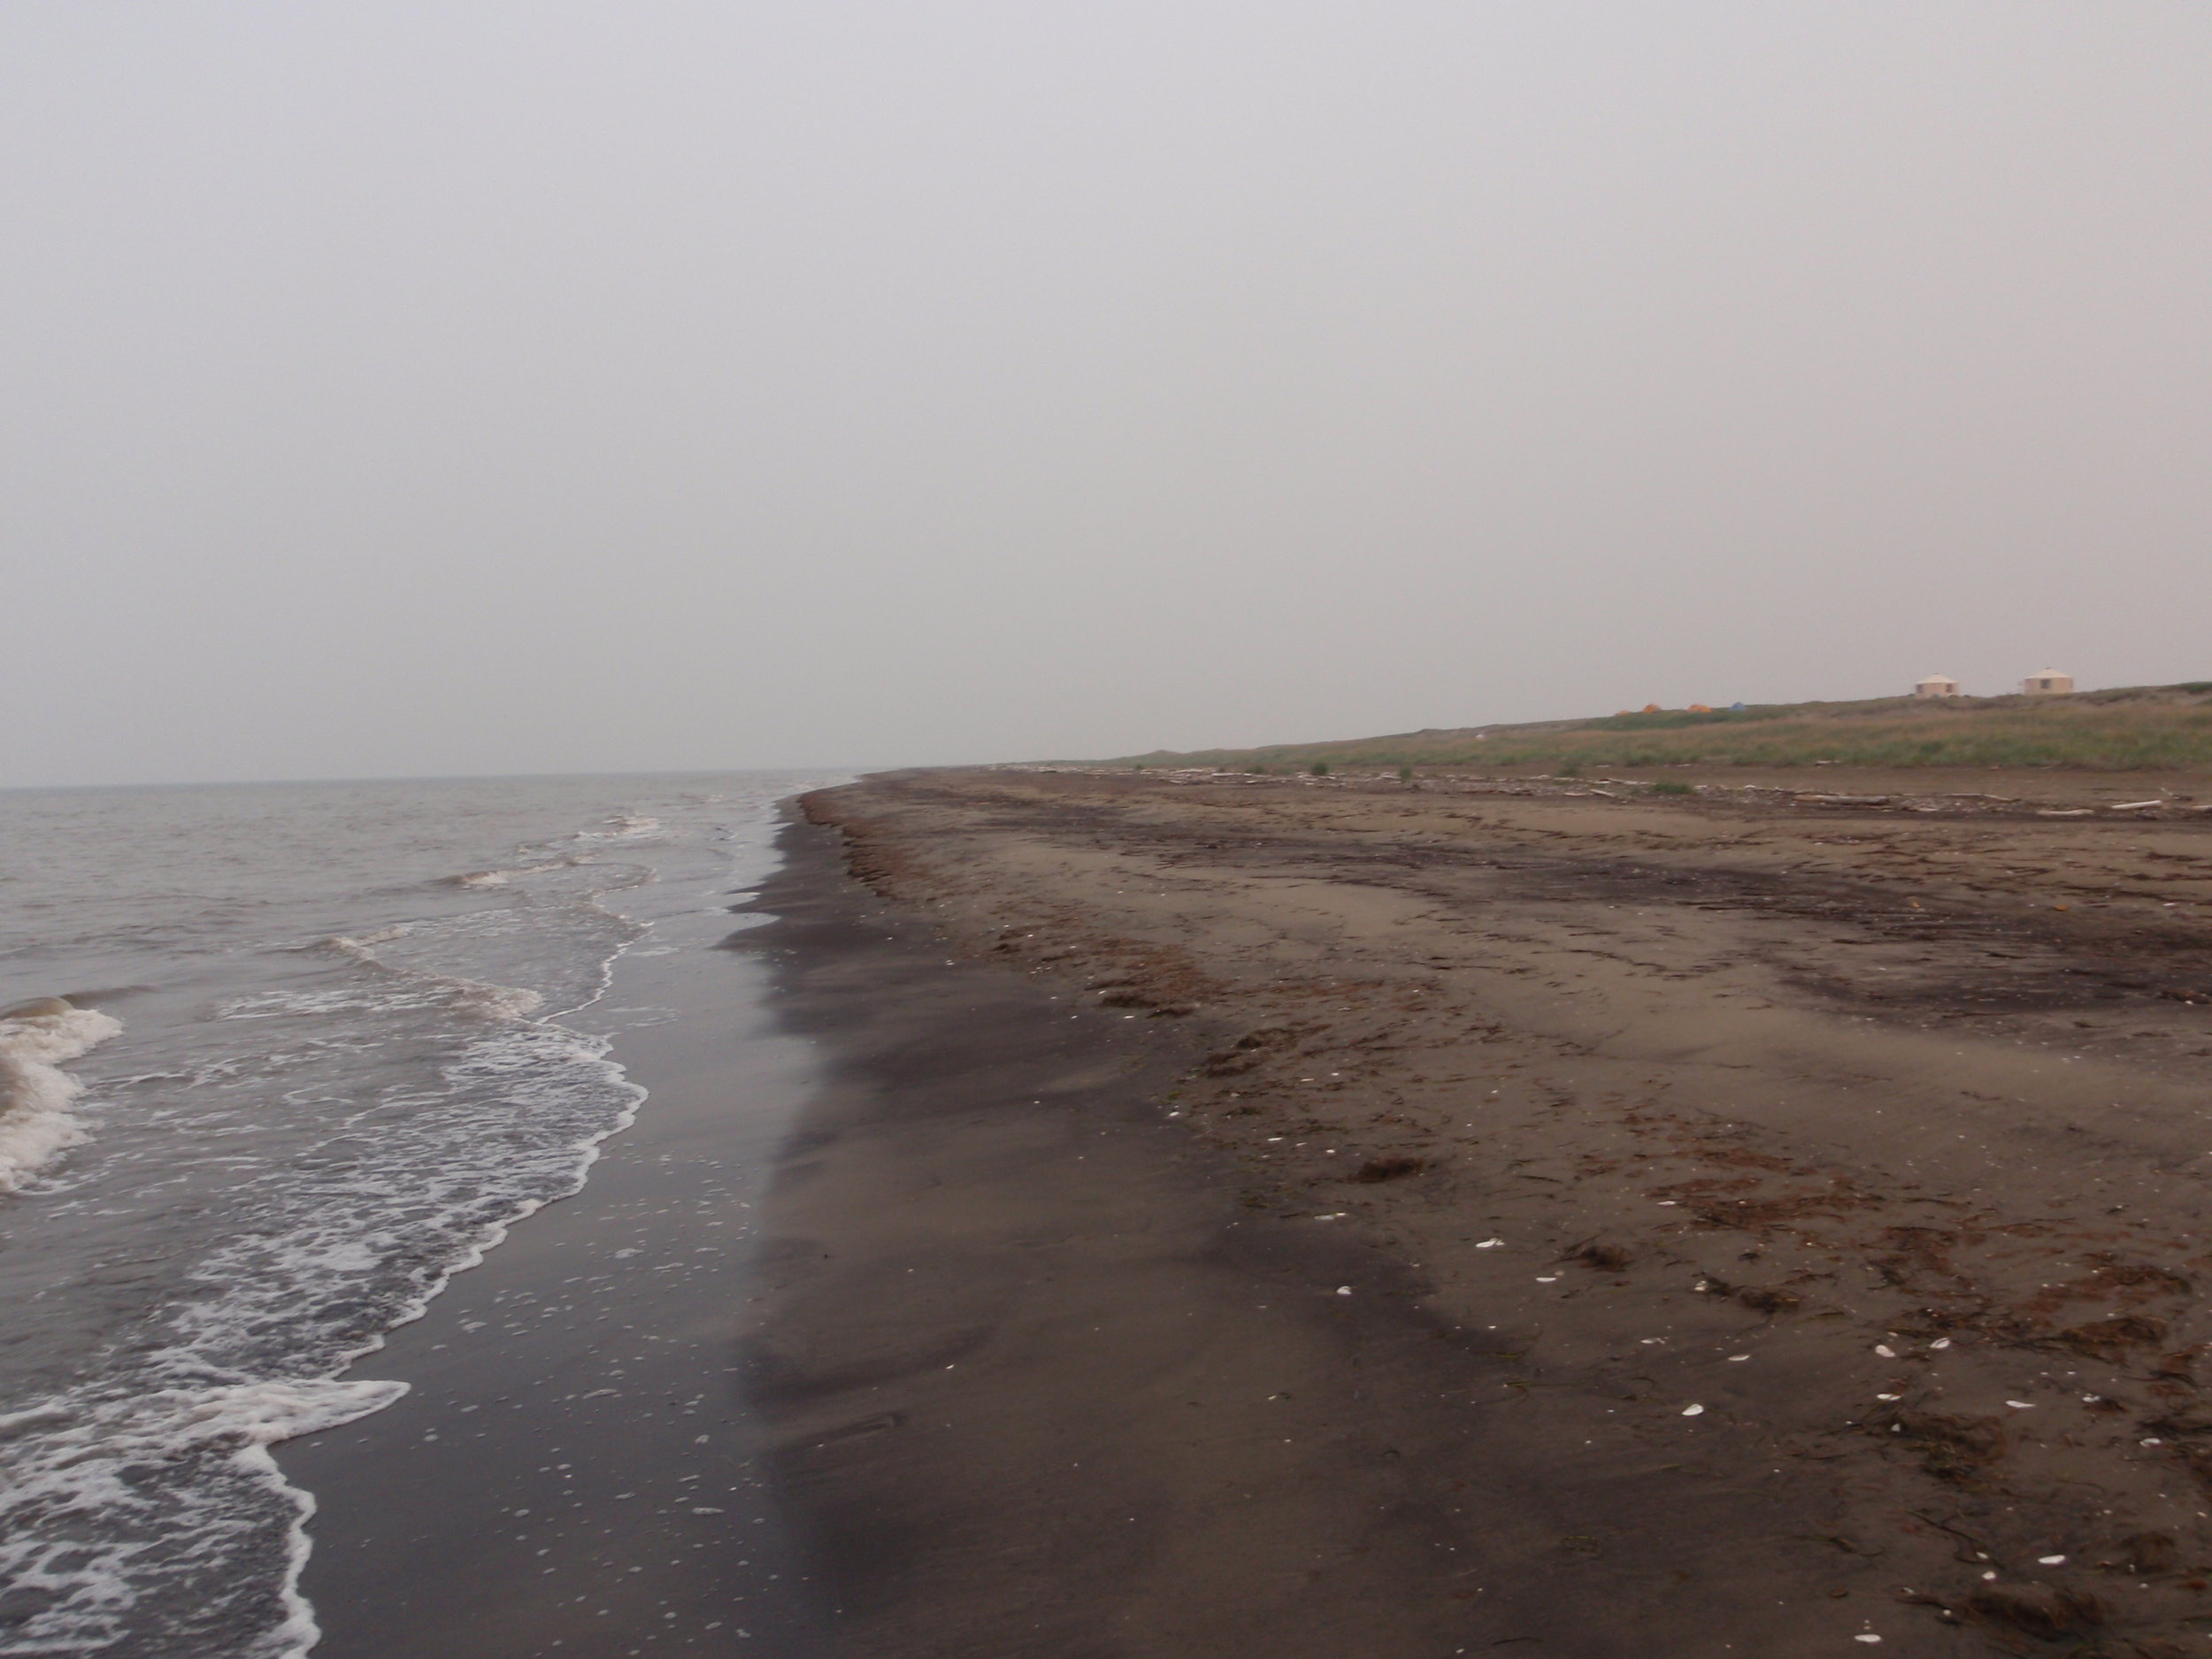 The beach at Cape Espenberg today. One thousand years ago, this was the site of a robust Inuit community. Photo by Owen K. Masen.